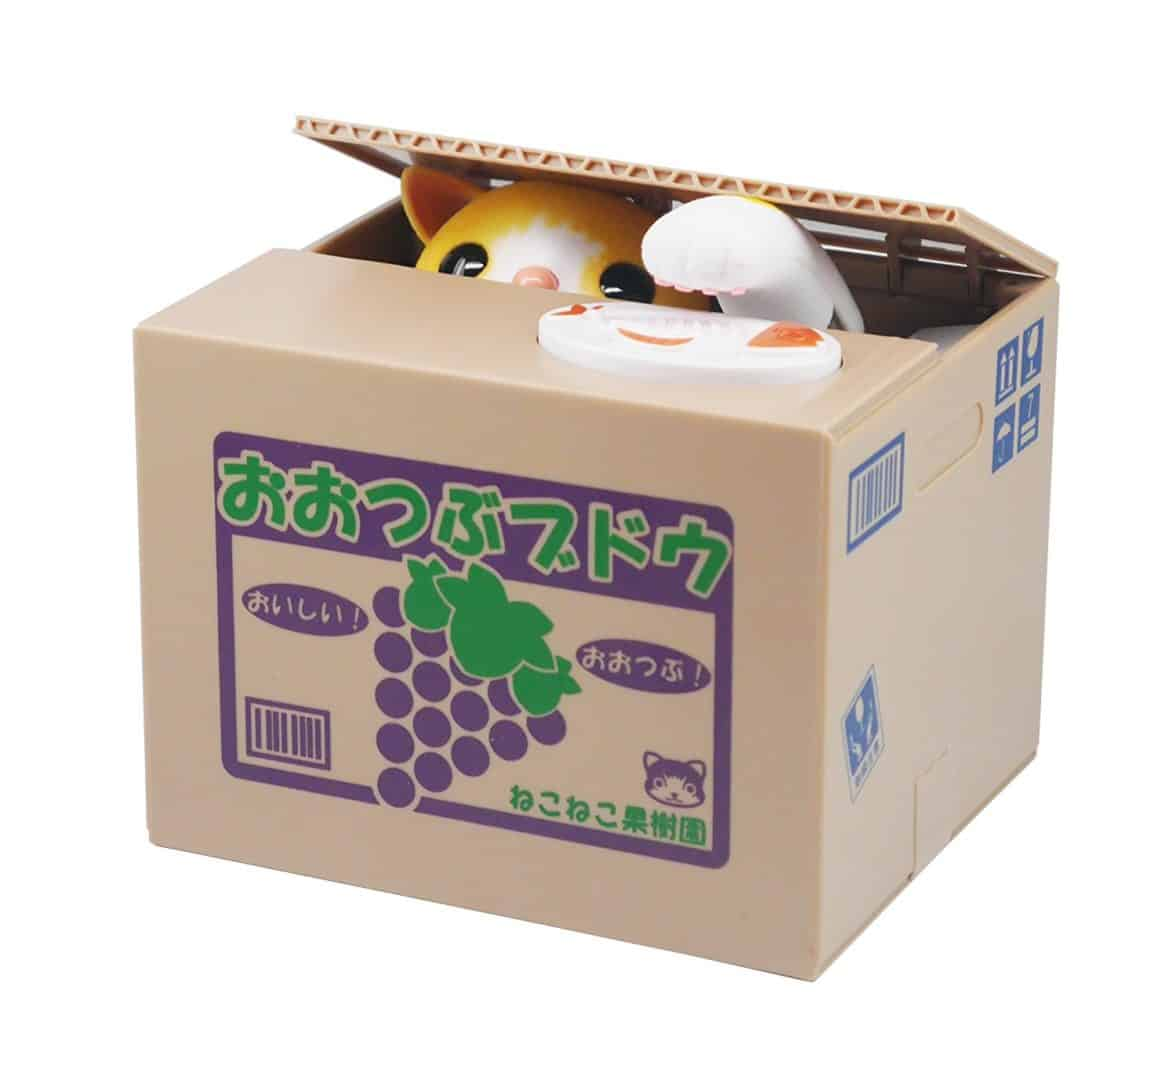 Itazura Coin Bank, Unique Gadgets & Toys Stealing Money Piggy Bank - Chatora